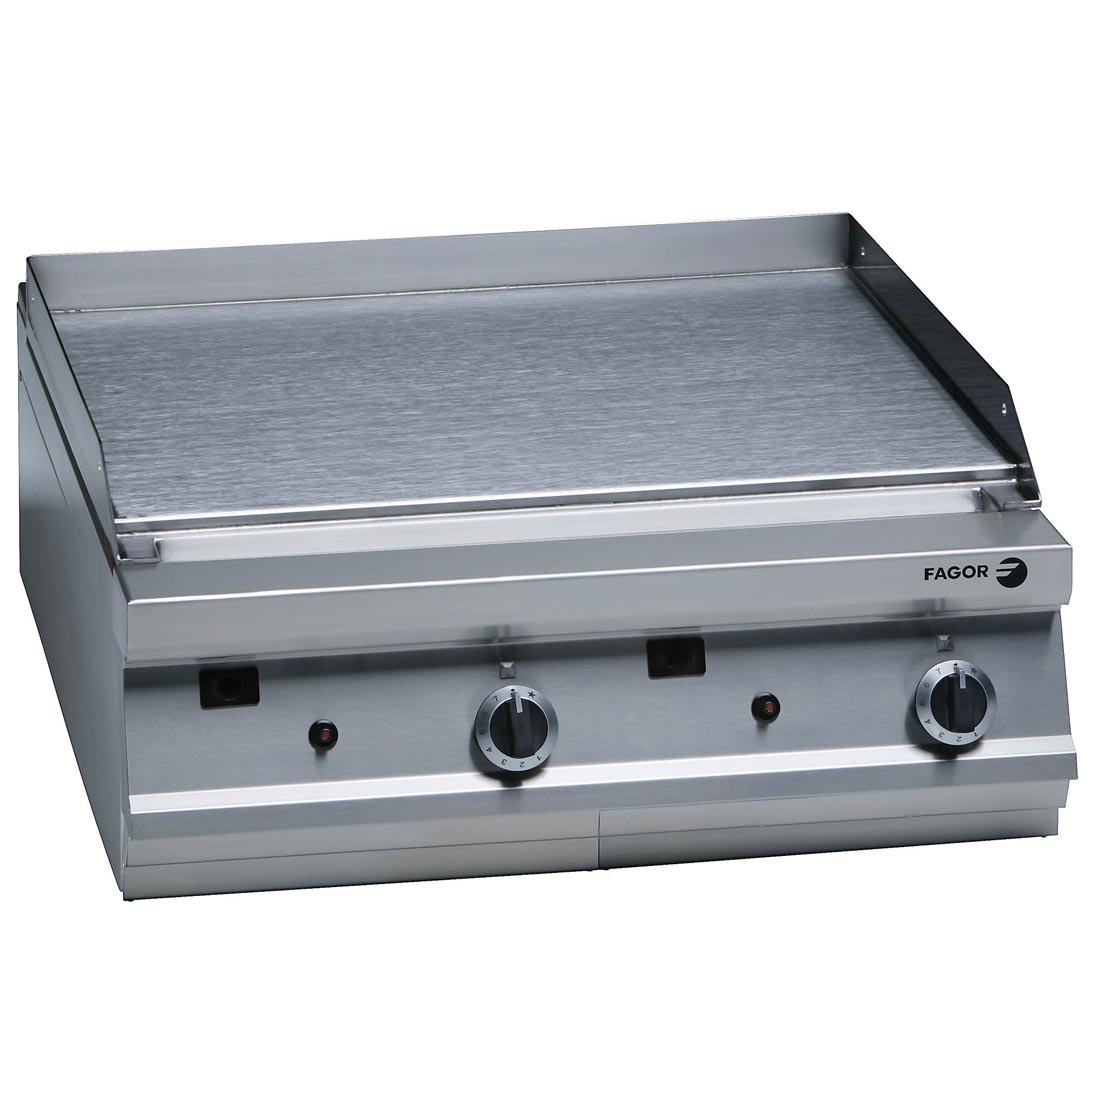 Fagor 900 series natural gas mild steel 2 zone fry top FTG9-10L